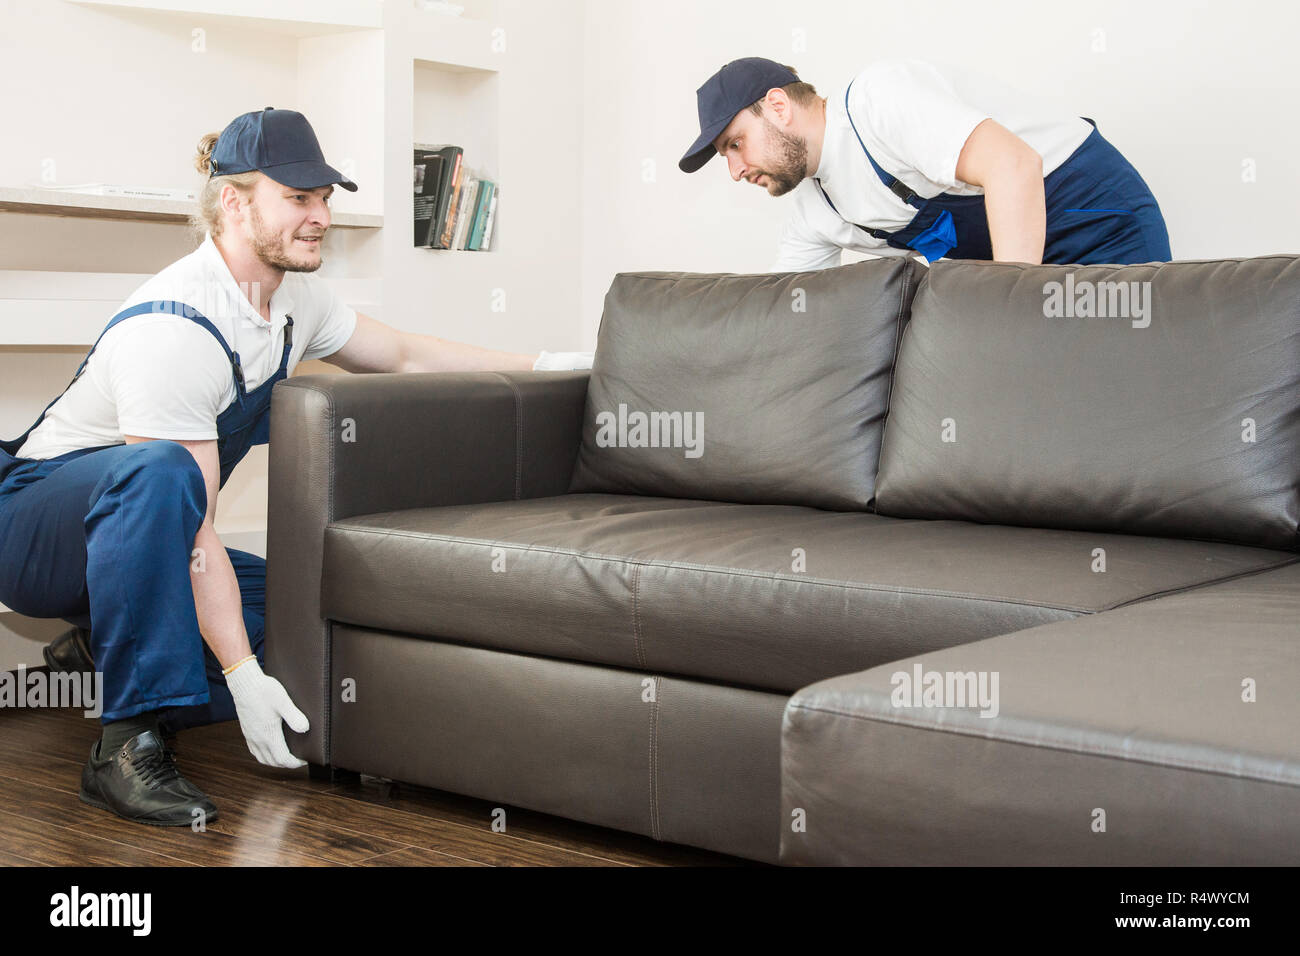 Delivery man move furniture carry sofa for moving to an ...